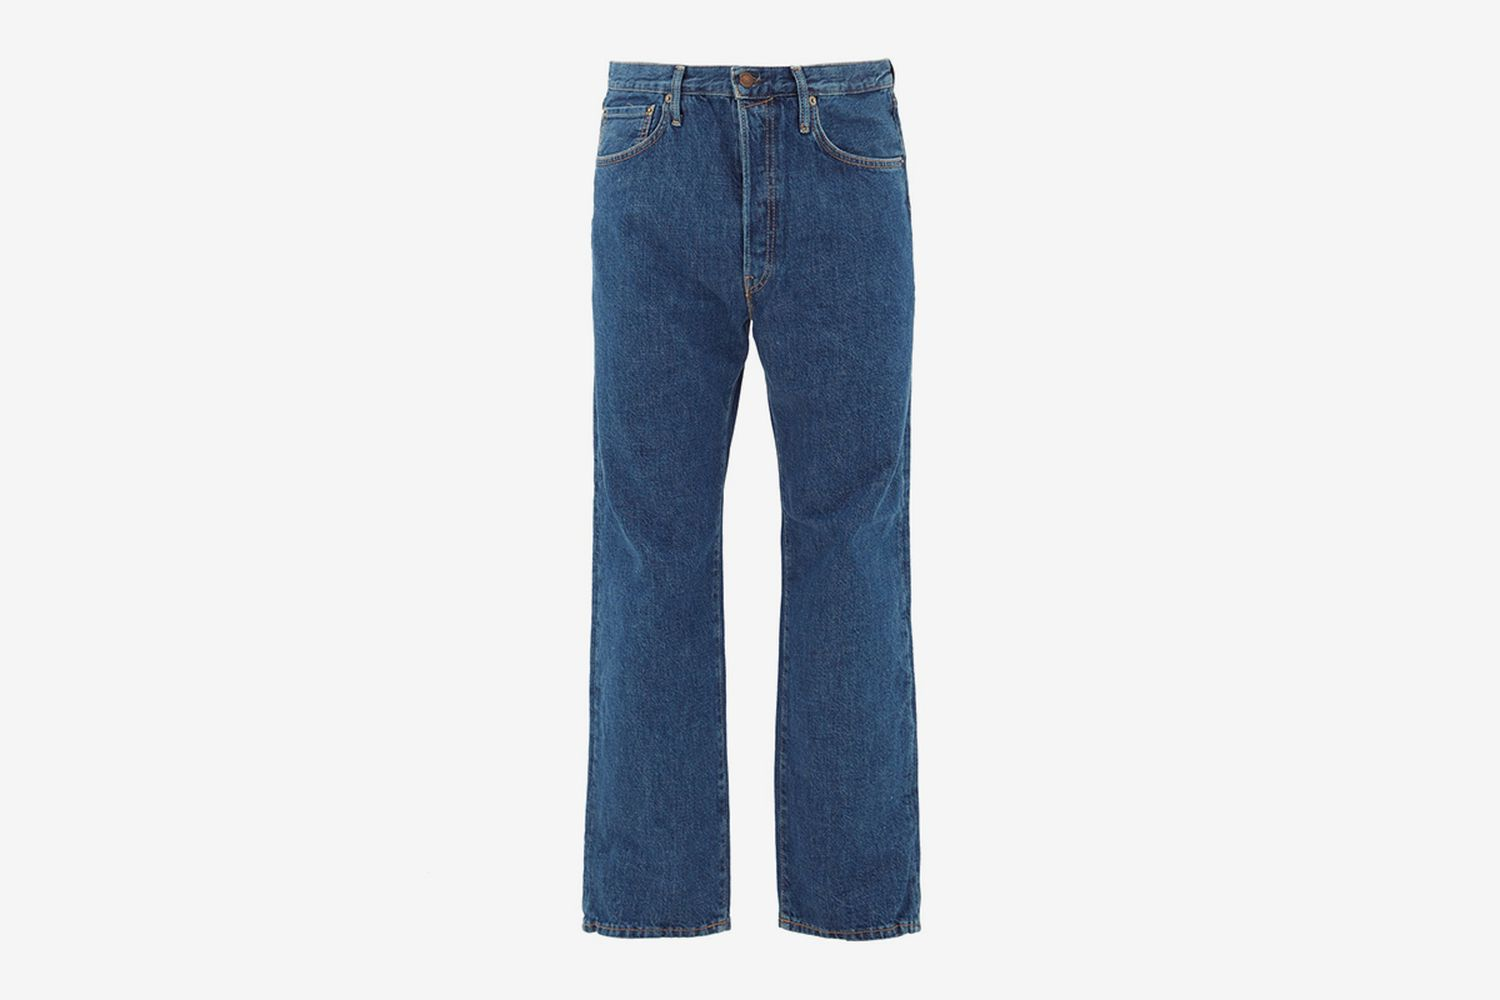 2003 Straight-Leg Cotton Jeans